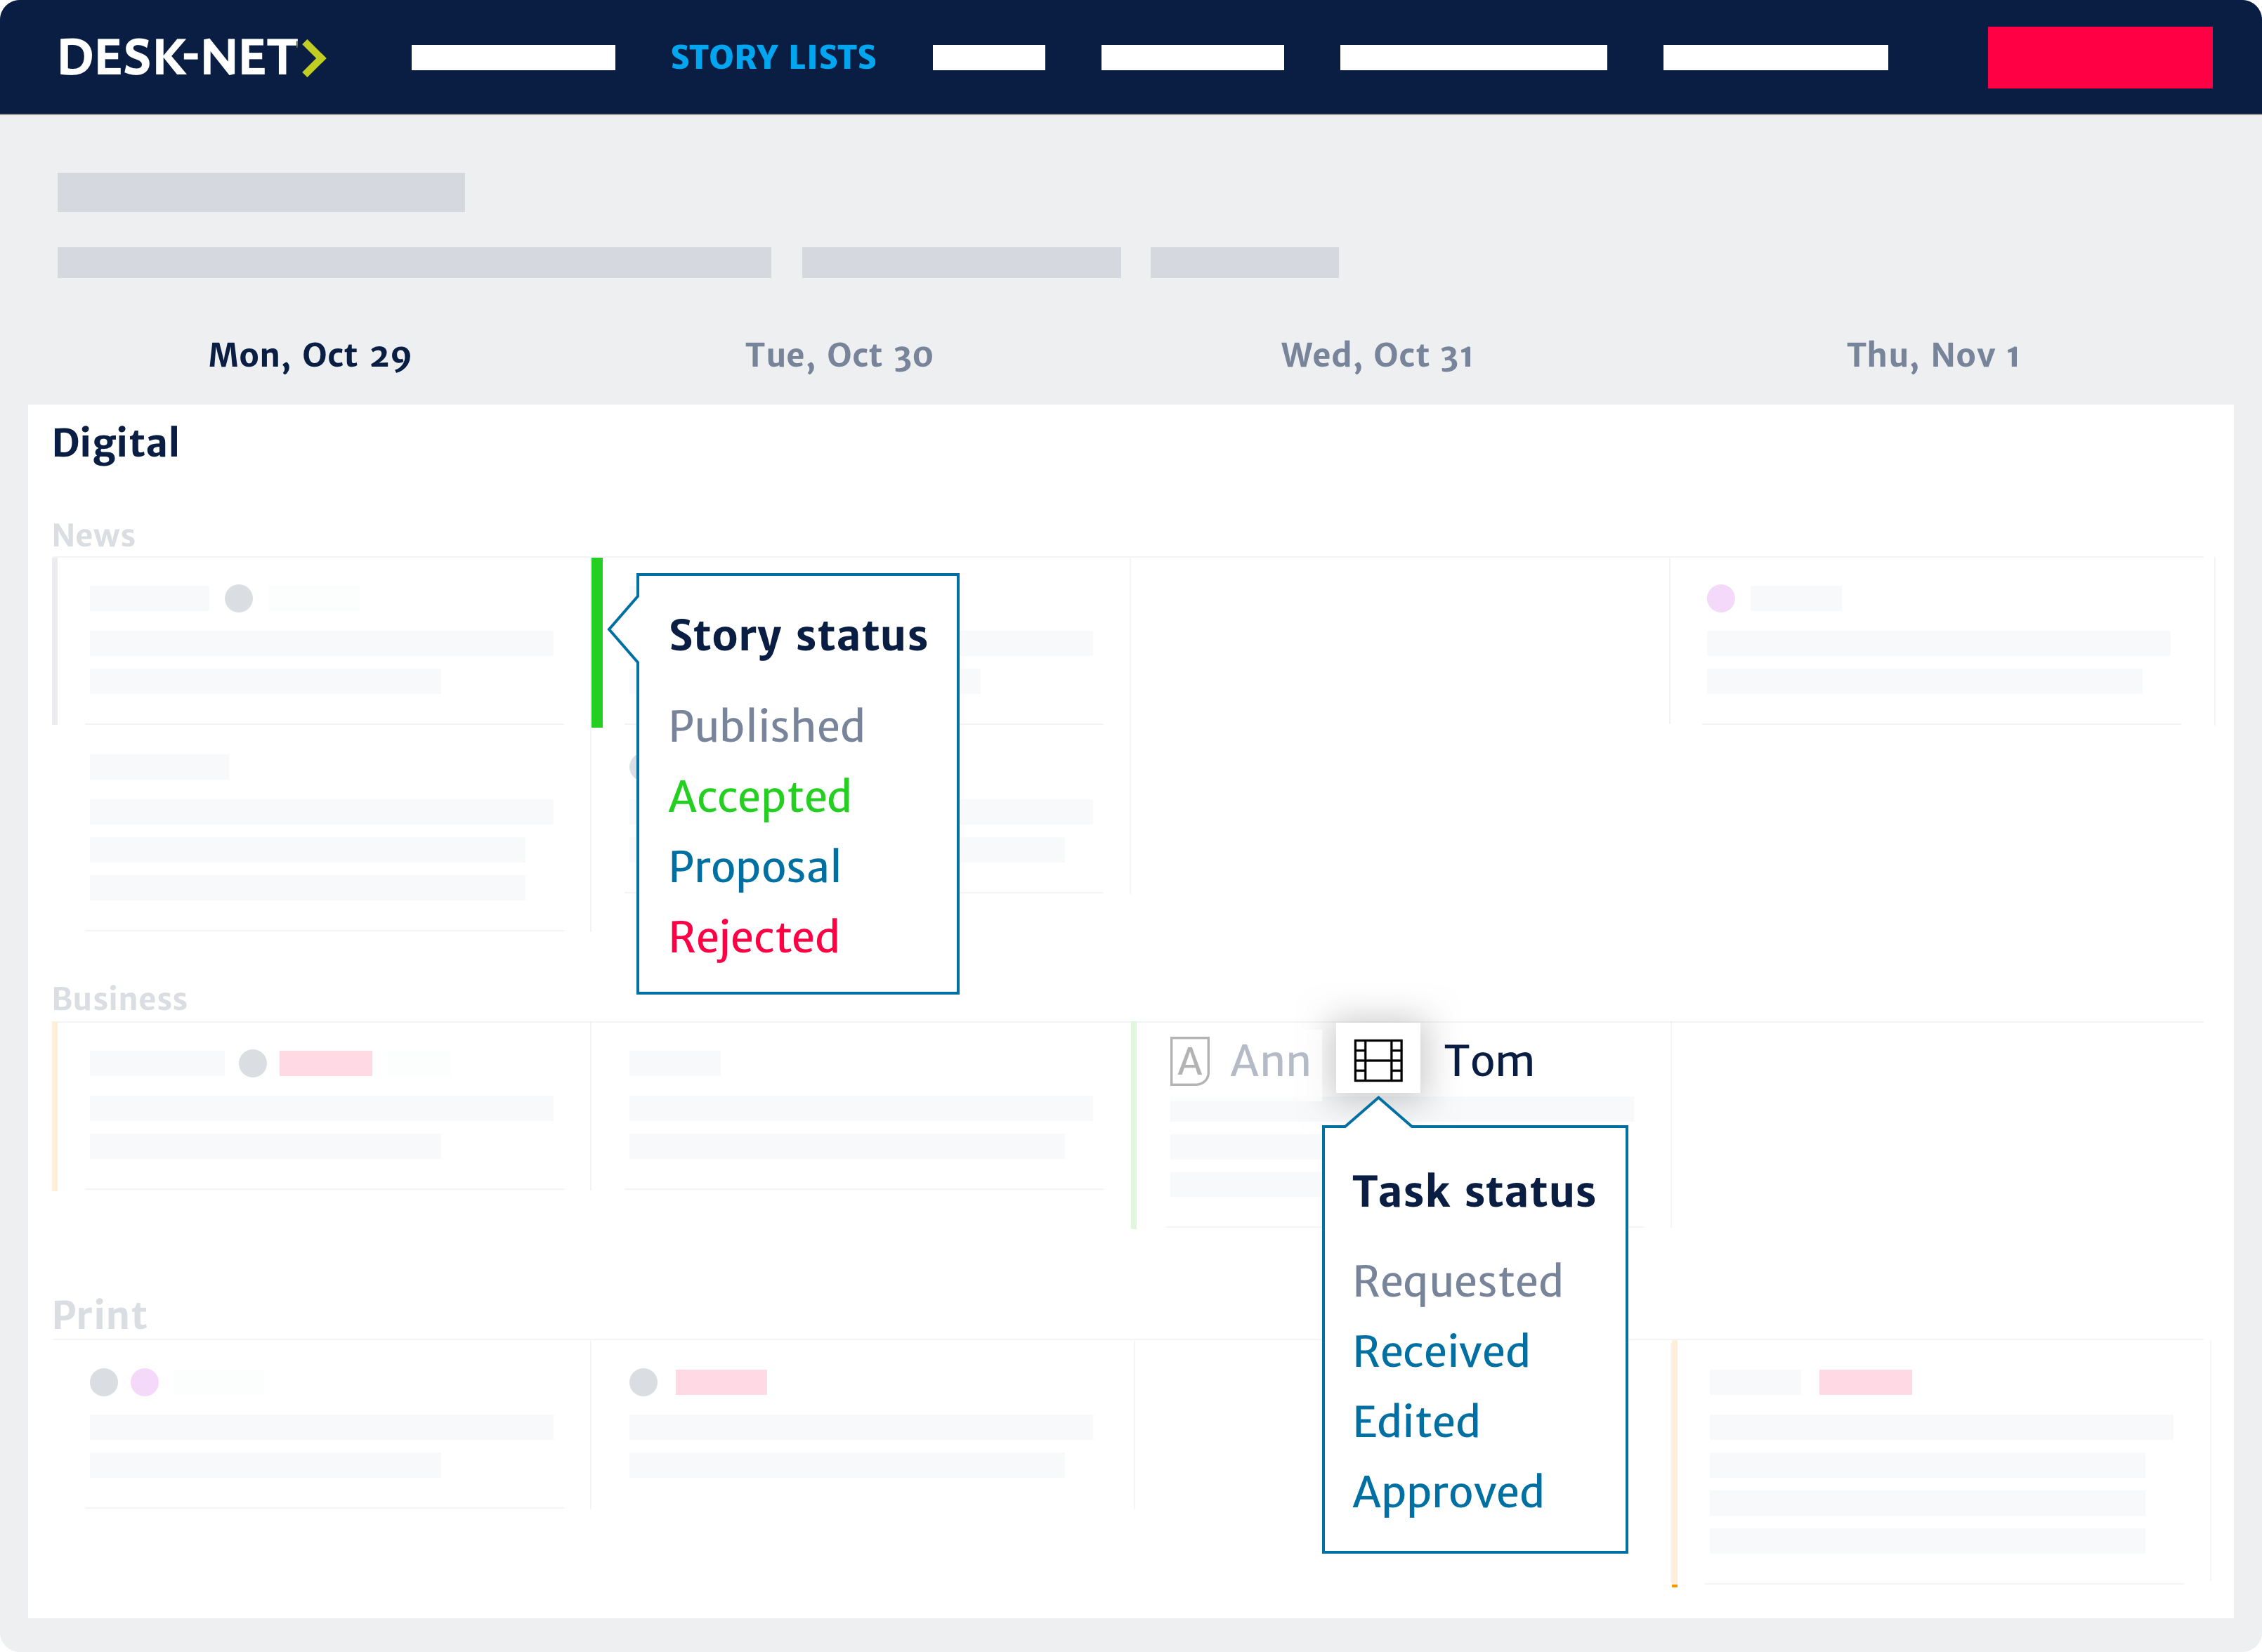 Status & tasks. Track each story's status and assignments, so everything gets done on time.